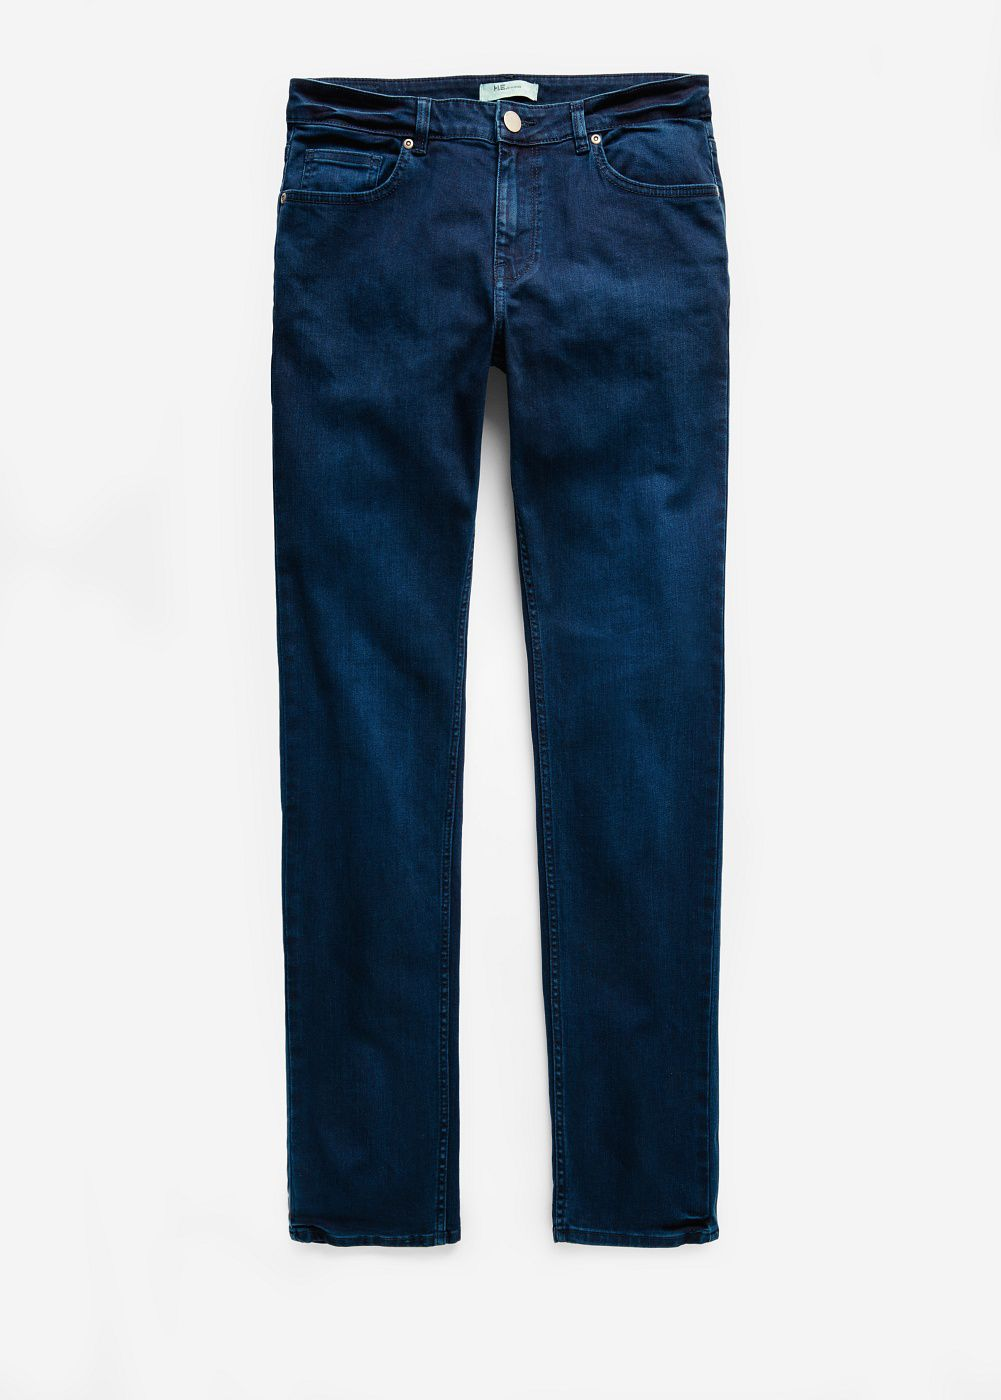 Slim-fit ink color Patrick jeans